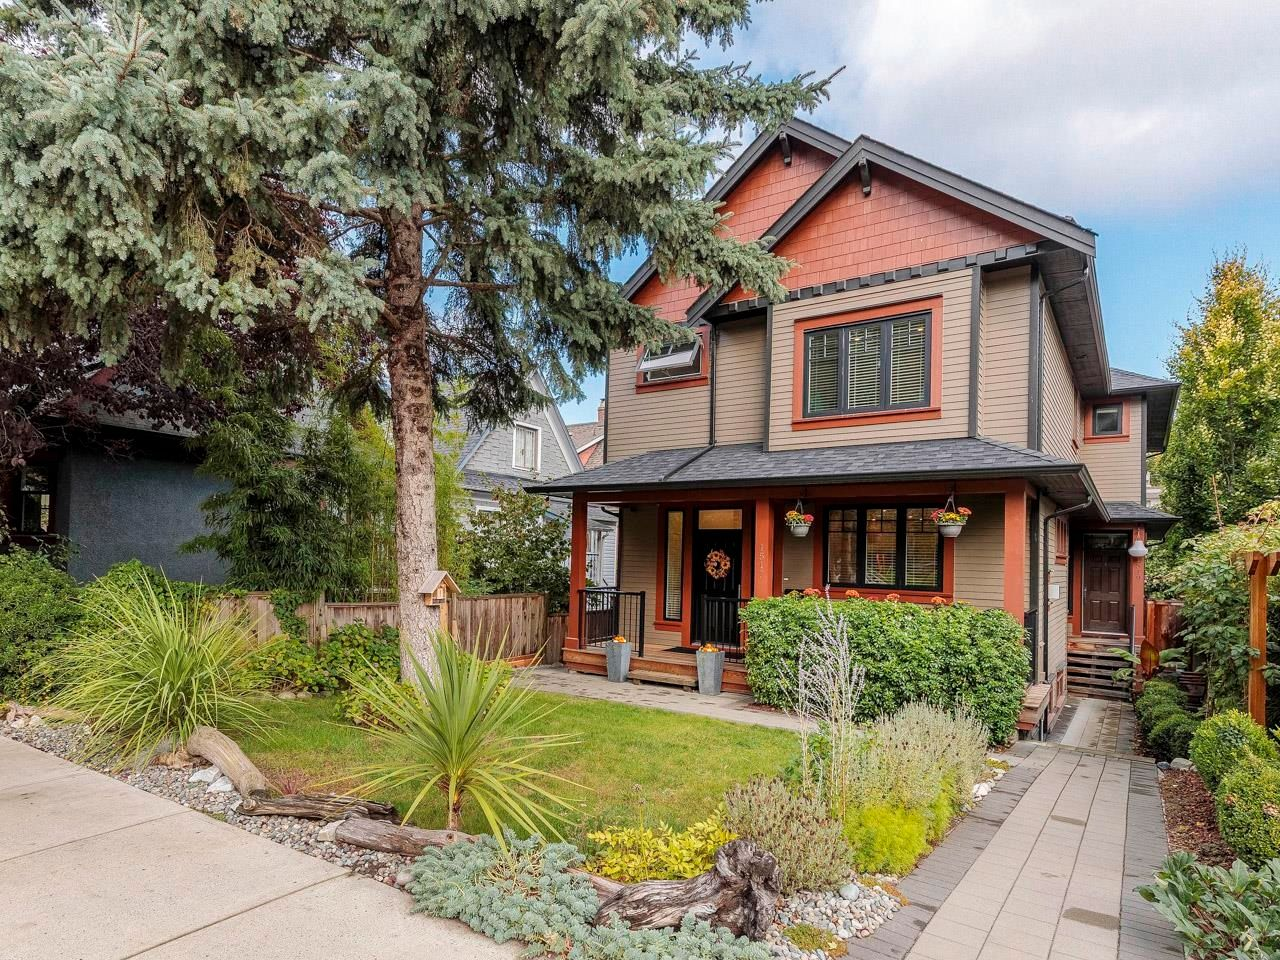 """Main Photo: 1517 E 8TH Avenue in Vancouver: Grandview Woodland 1/2 Duplex for sale in """"Grandview Woodland"""" (Vancouver East)  : MLS®# R2625142"""